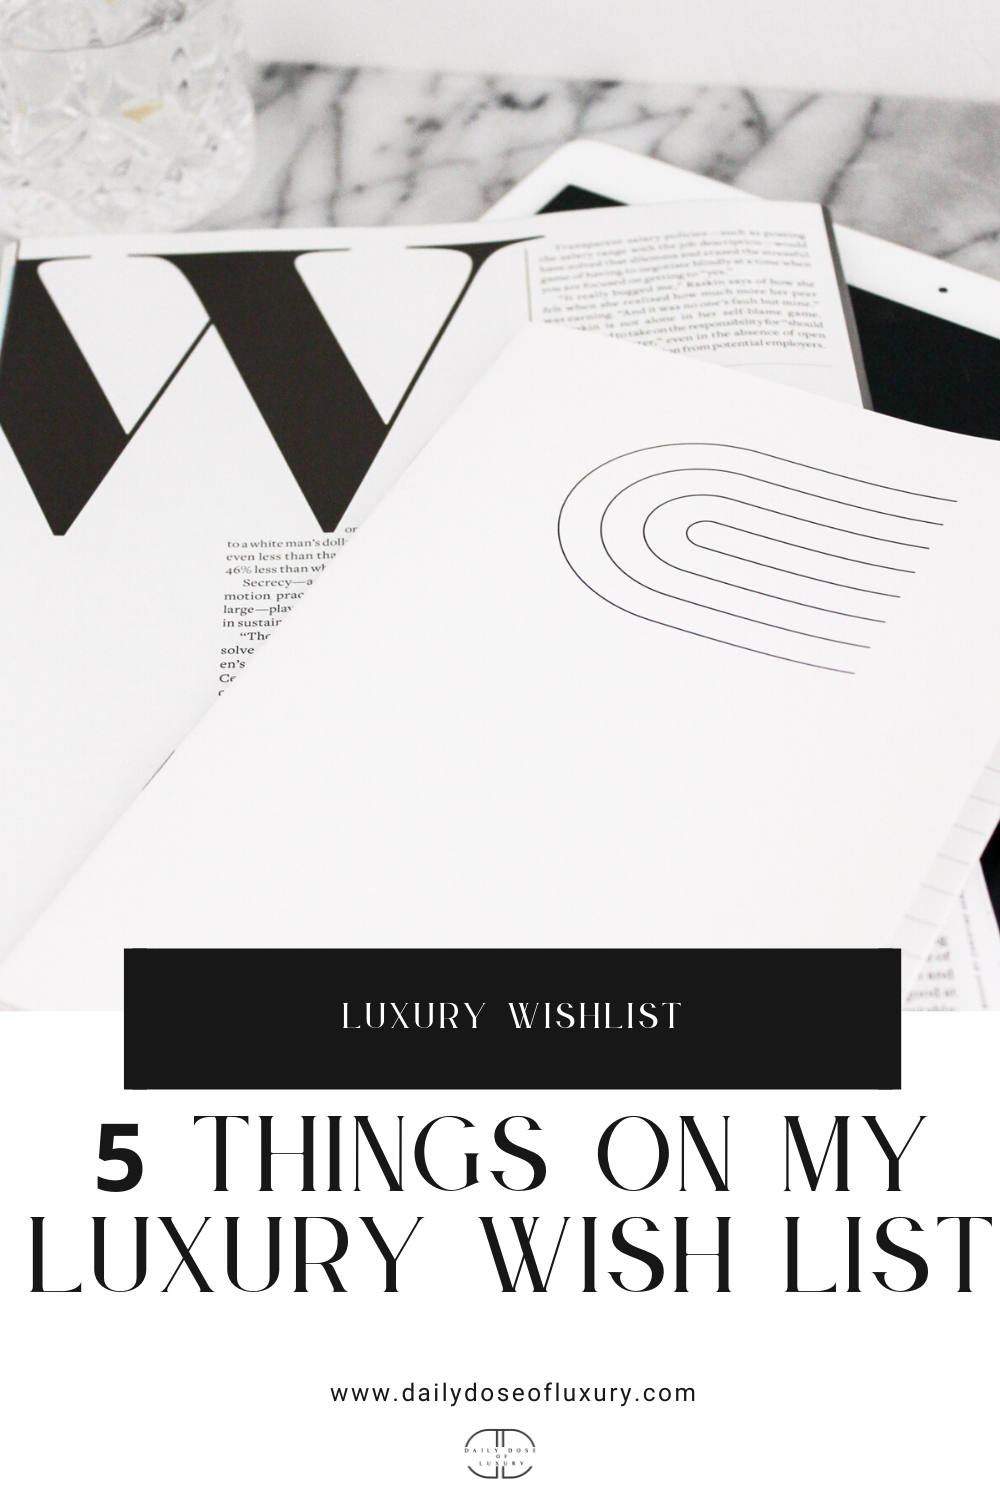 5 Things on My Luxury Wish List